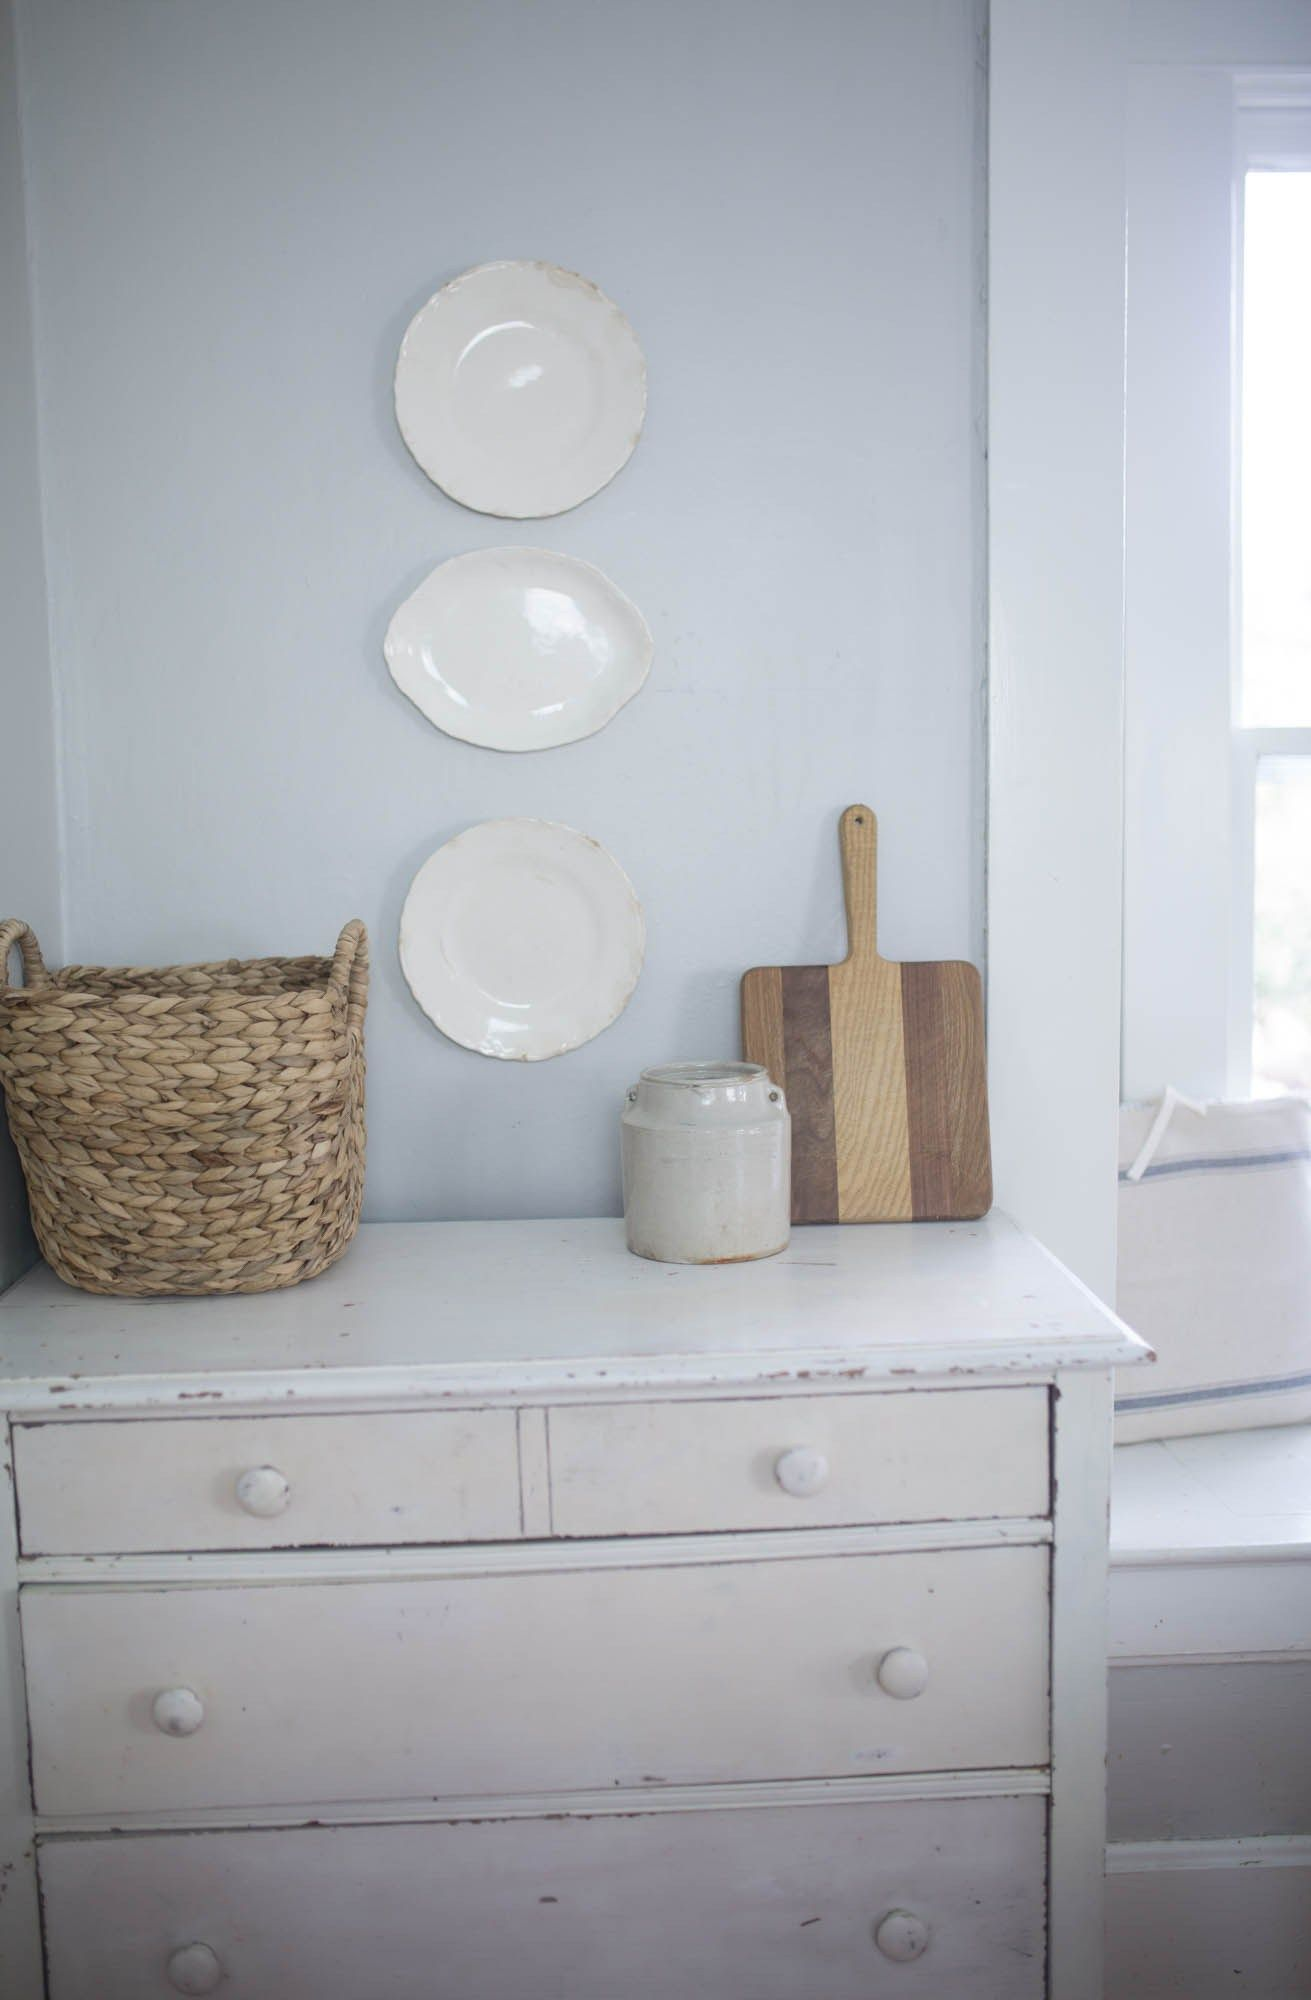 How to Hang Plates on a Wall | Walls, Plate wall and Kitchens